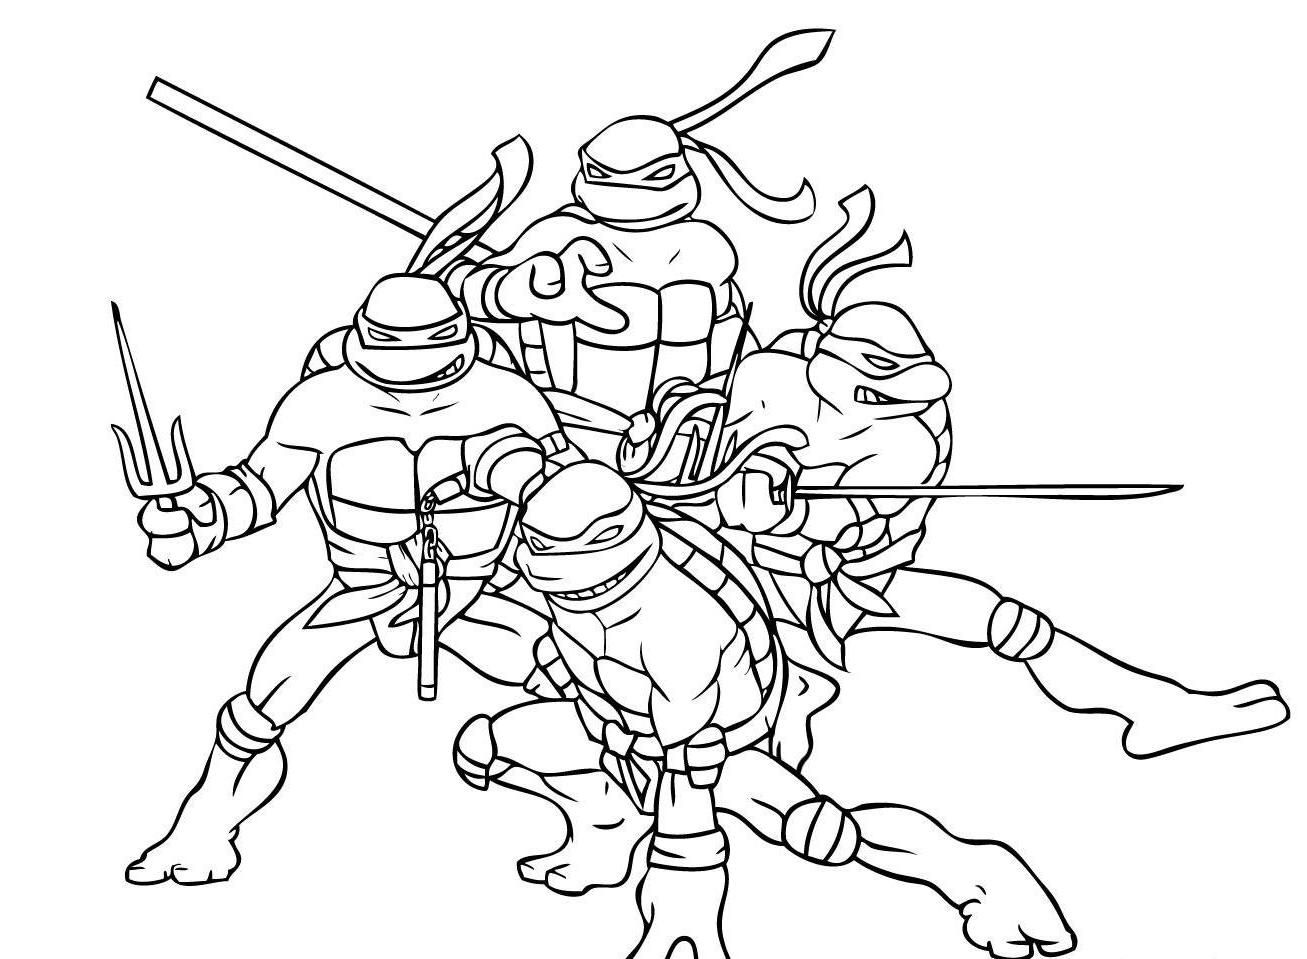 the ninja turtles coloring pages | 80s cartoons colouring pages ... - Ninja Turtle Pizza Coloring Pages